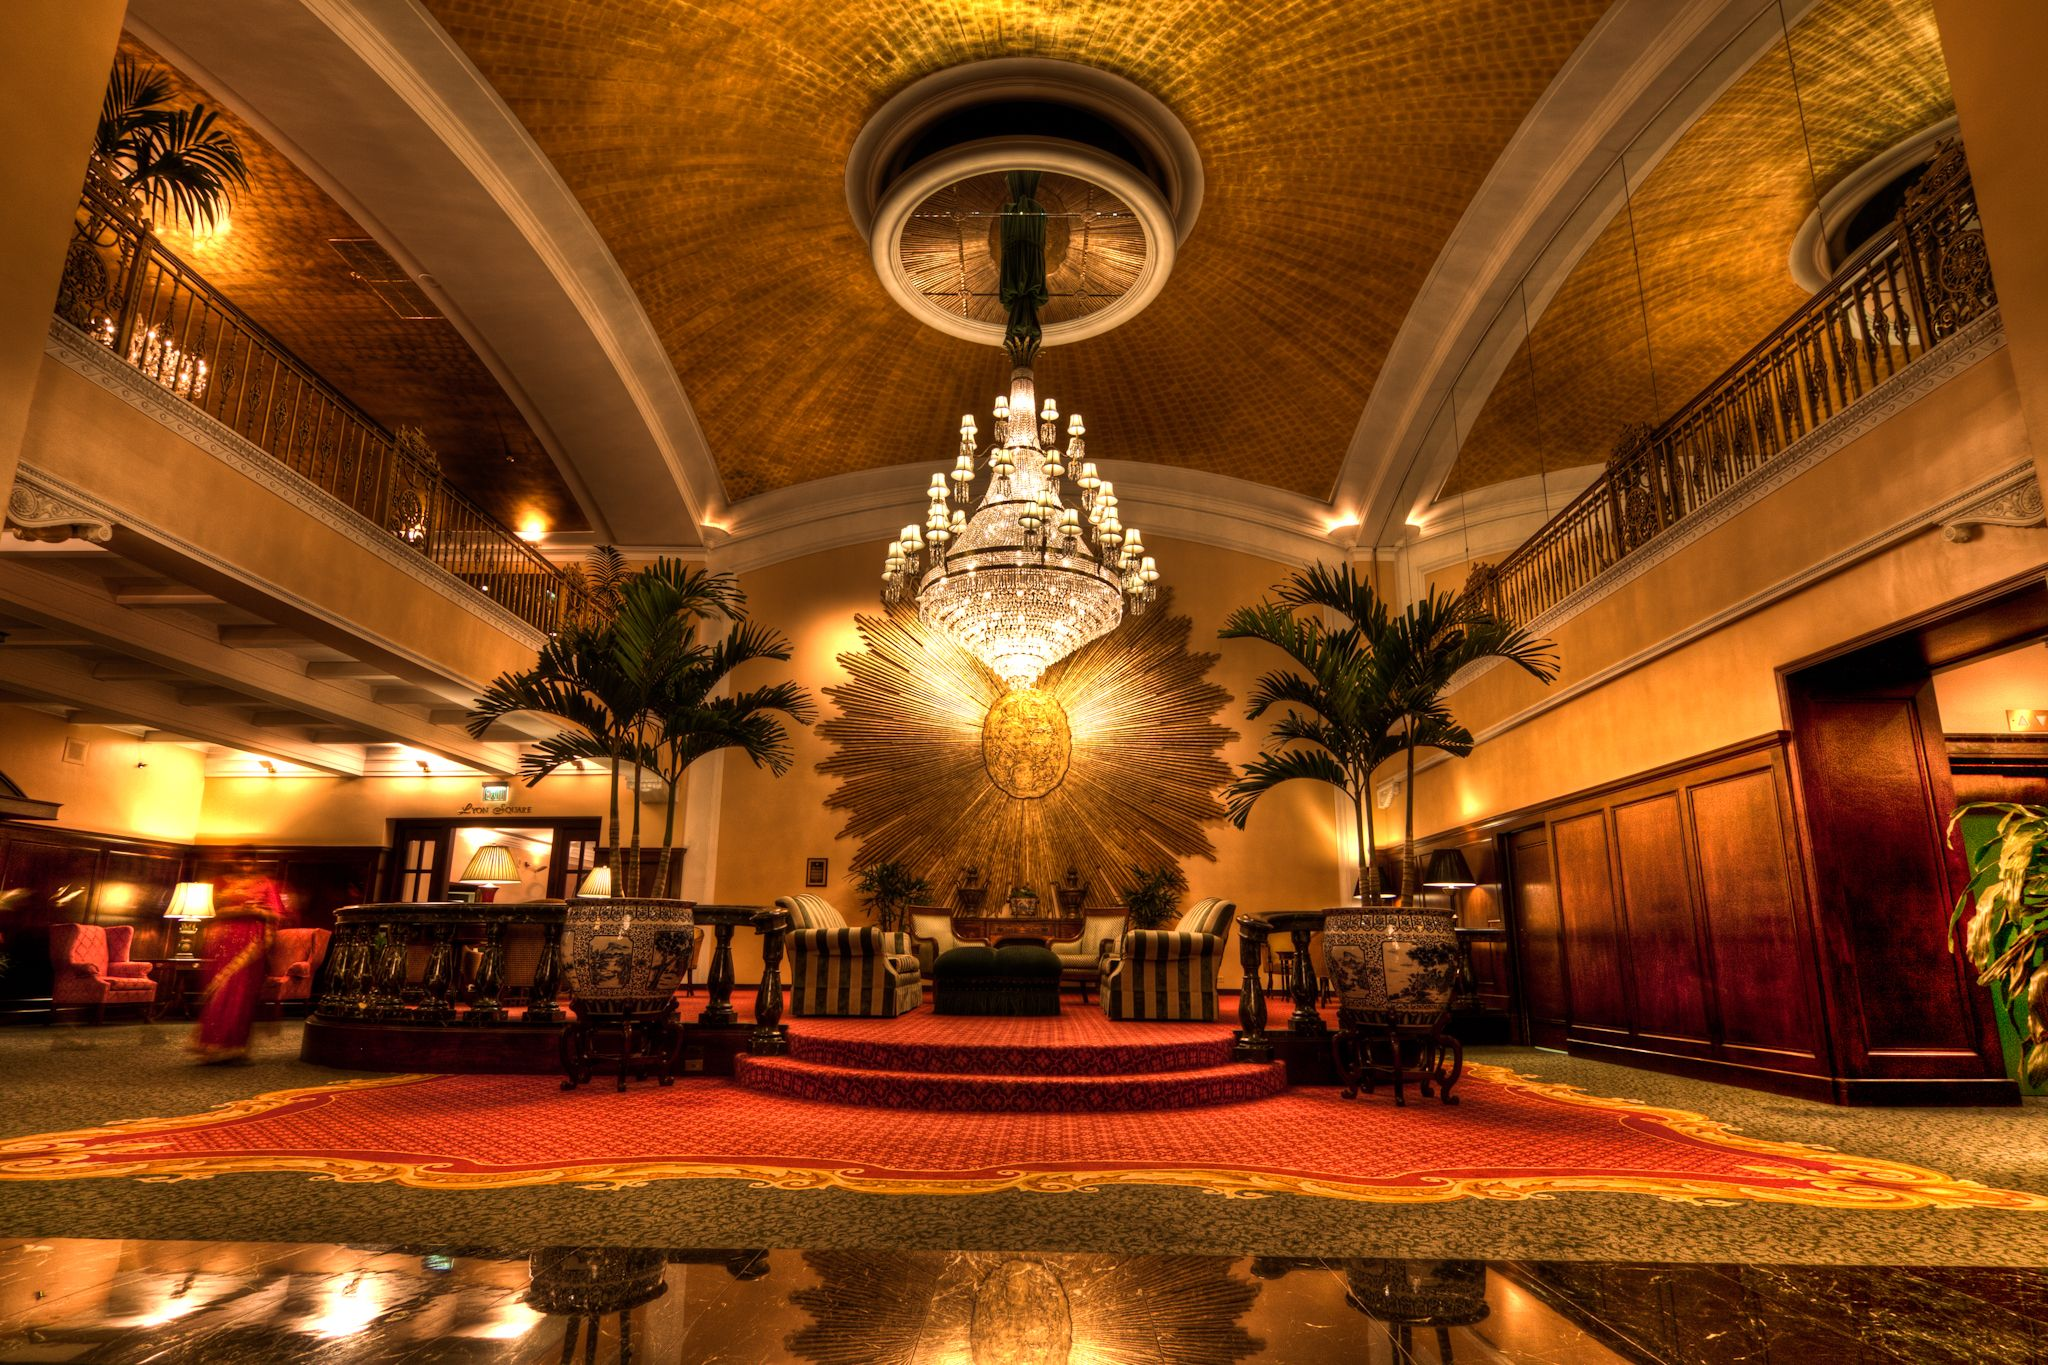 Amway Grand Rapids The Opulent Lobby Of The Amway Grand Plaza Hotel Defines Old World Glamour Featuring Three Might Grand Plaza Grand Rapids Plaza Hotel